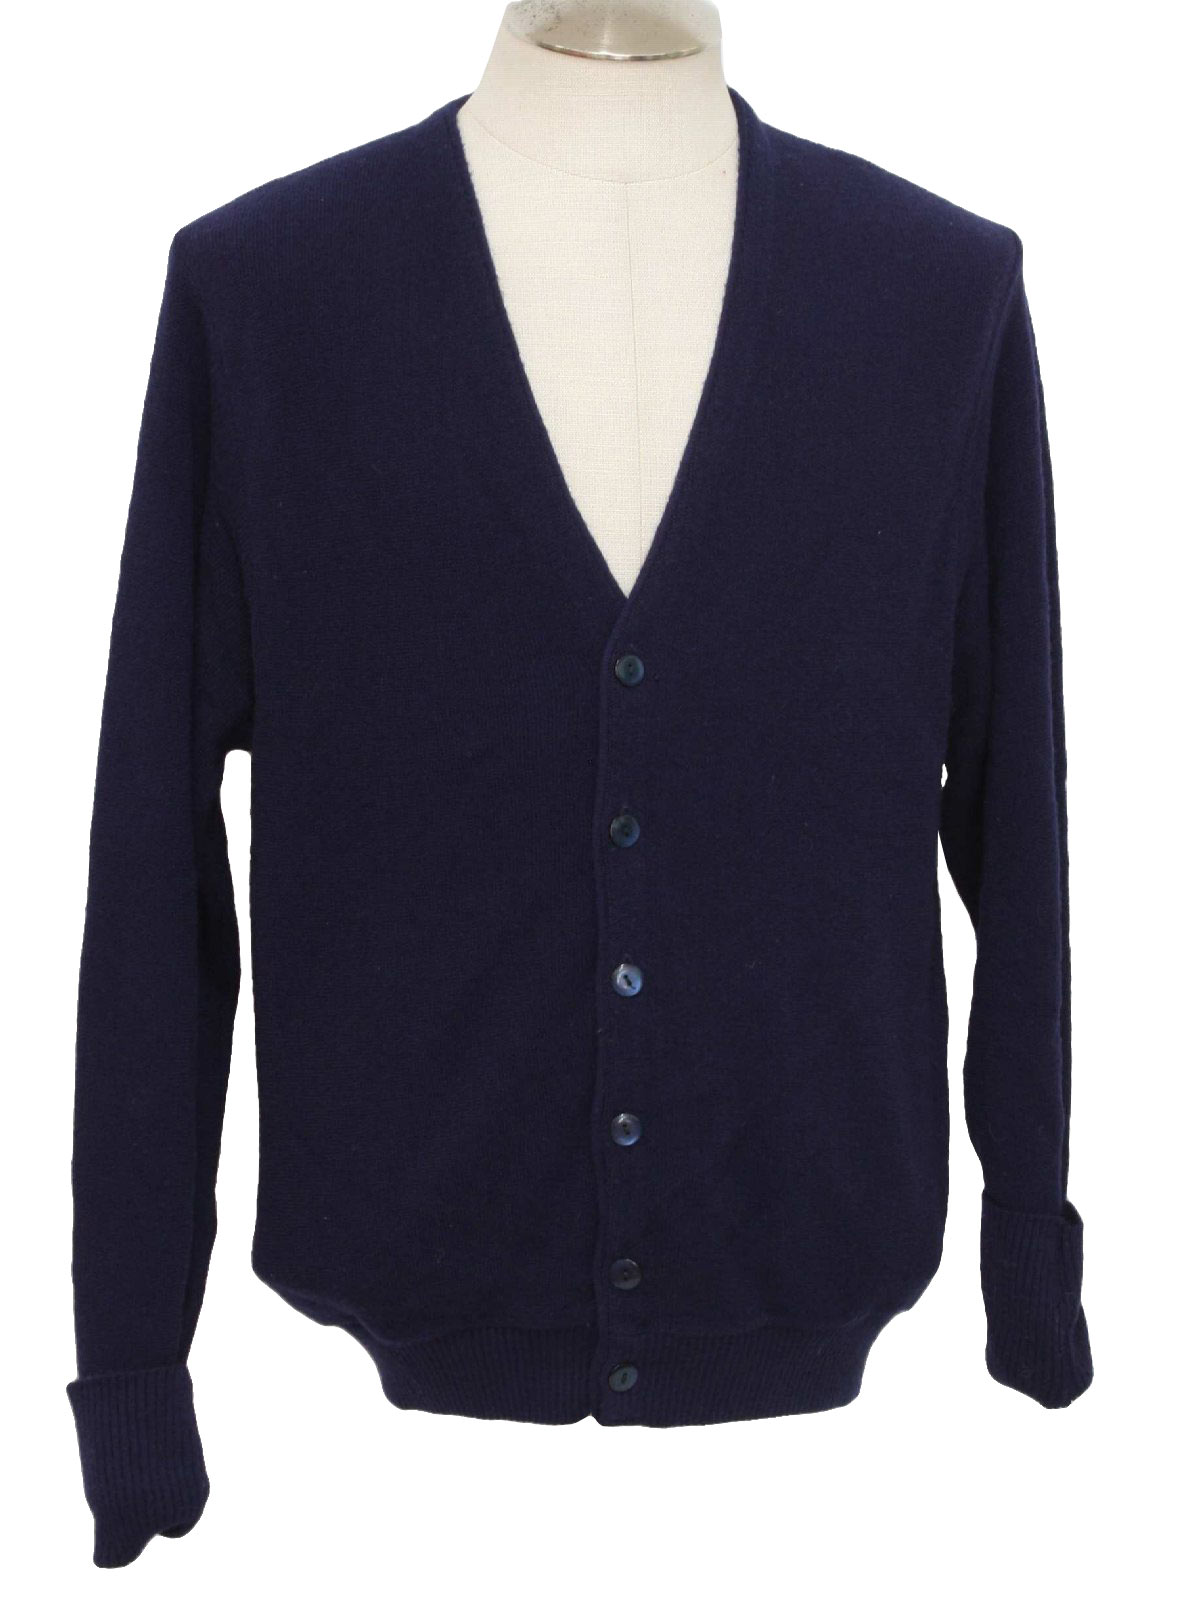 Product Description Knitwears Long Sleeve Casual Cardigans For a chilly fall day, an air.